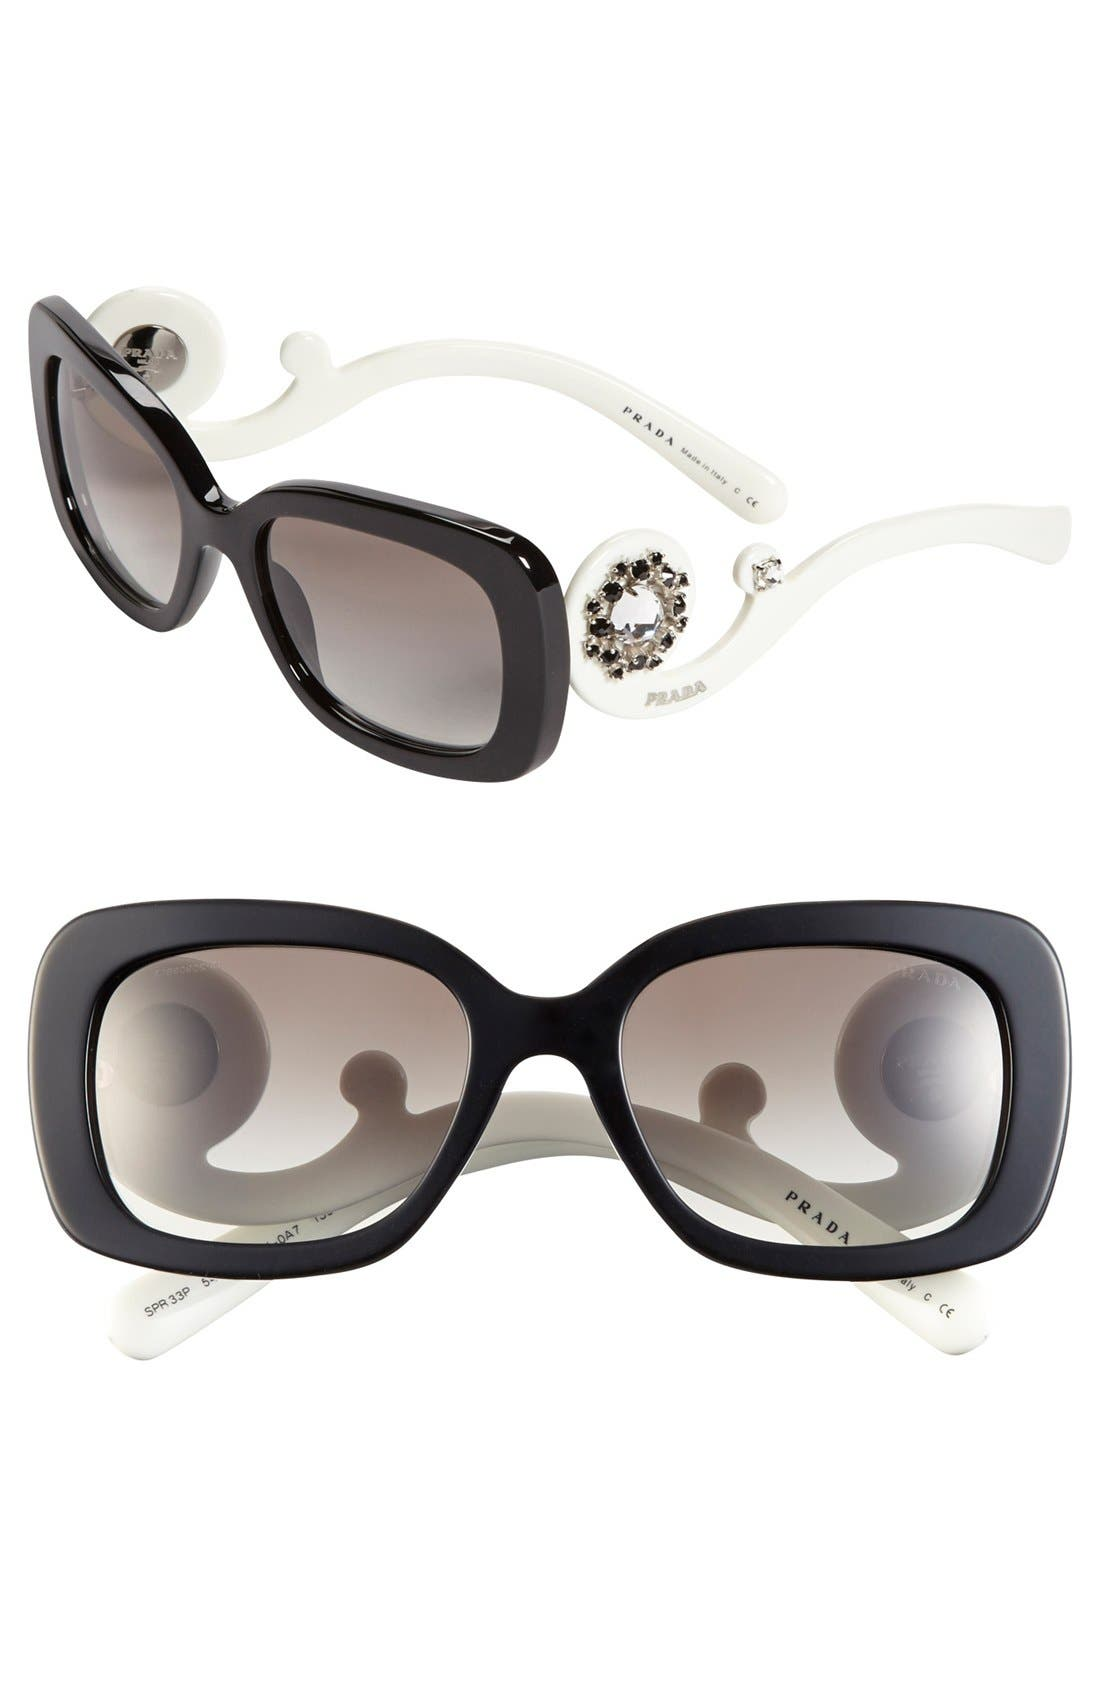 Main Image - Prada 54mm Polarized Sunglasses